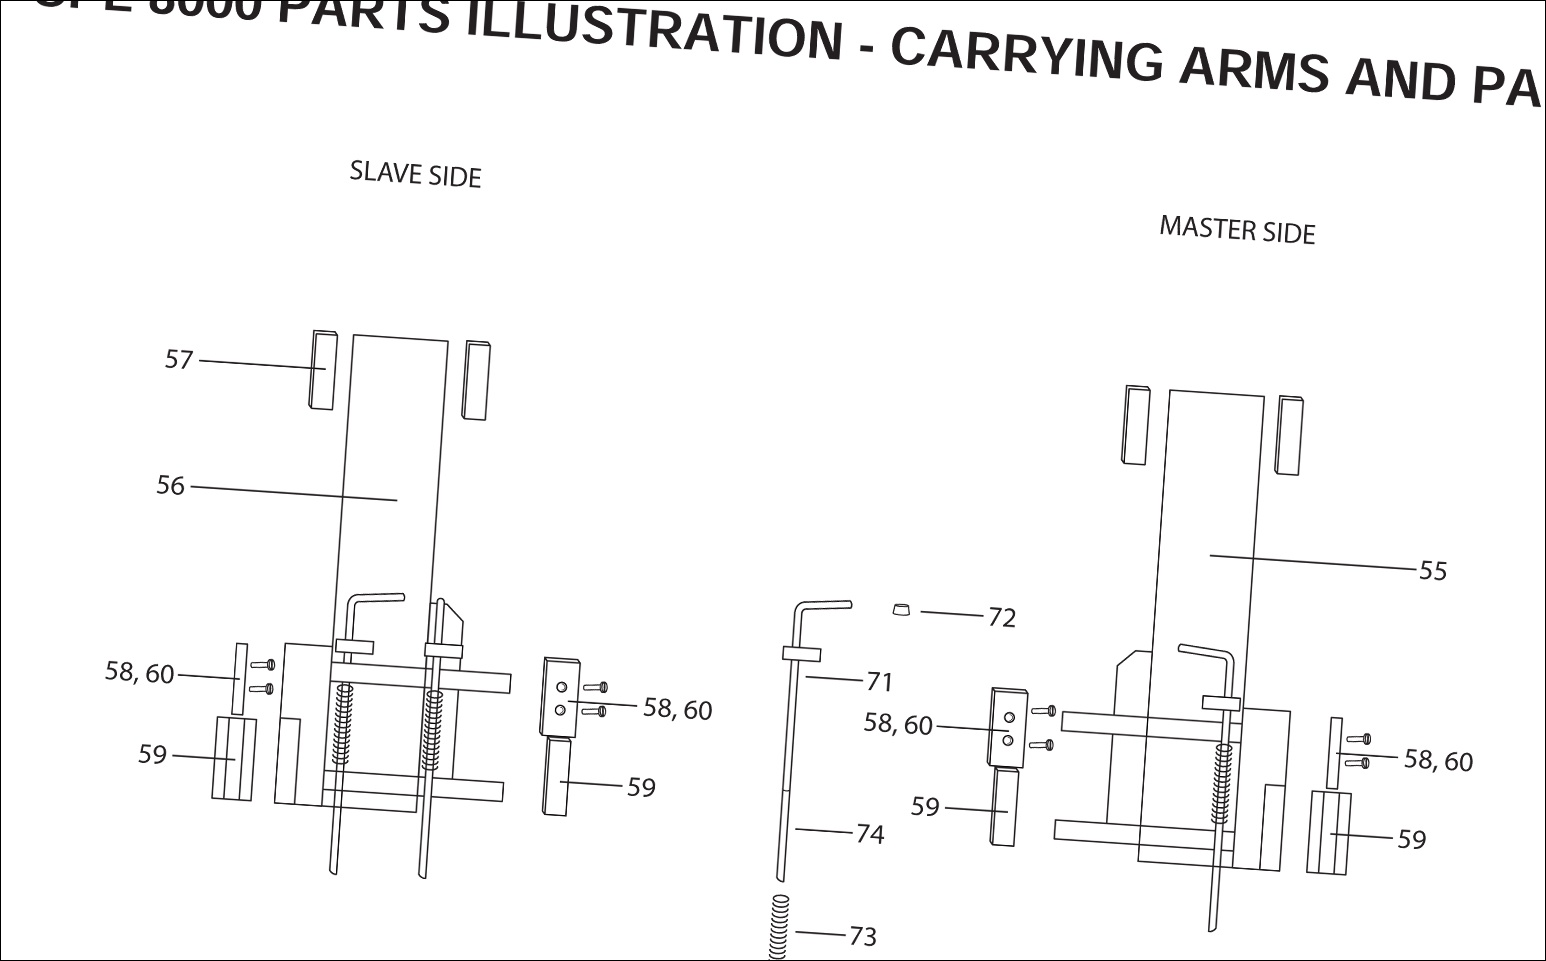 Car lift hydraulic schematics wiring diagrams schematics hydraulic lift cylinder parts diagram arlington wiring library u2022 nussbaum lift parts nussbaum auto lift parts nussbaum car lift rh allpartsupply com asfbconference2016 Images